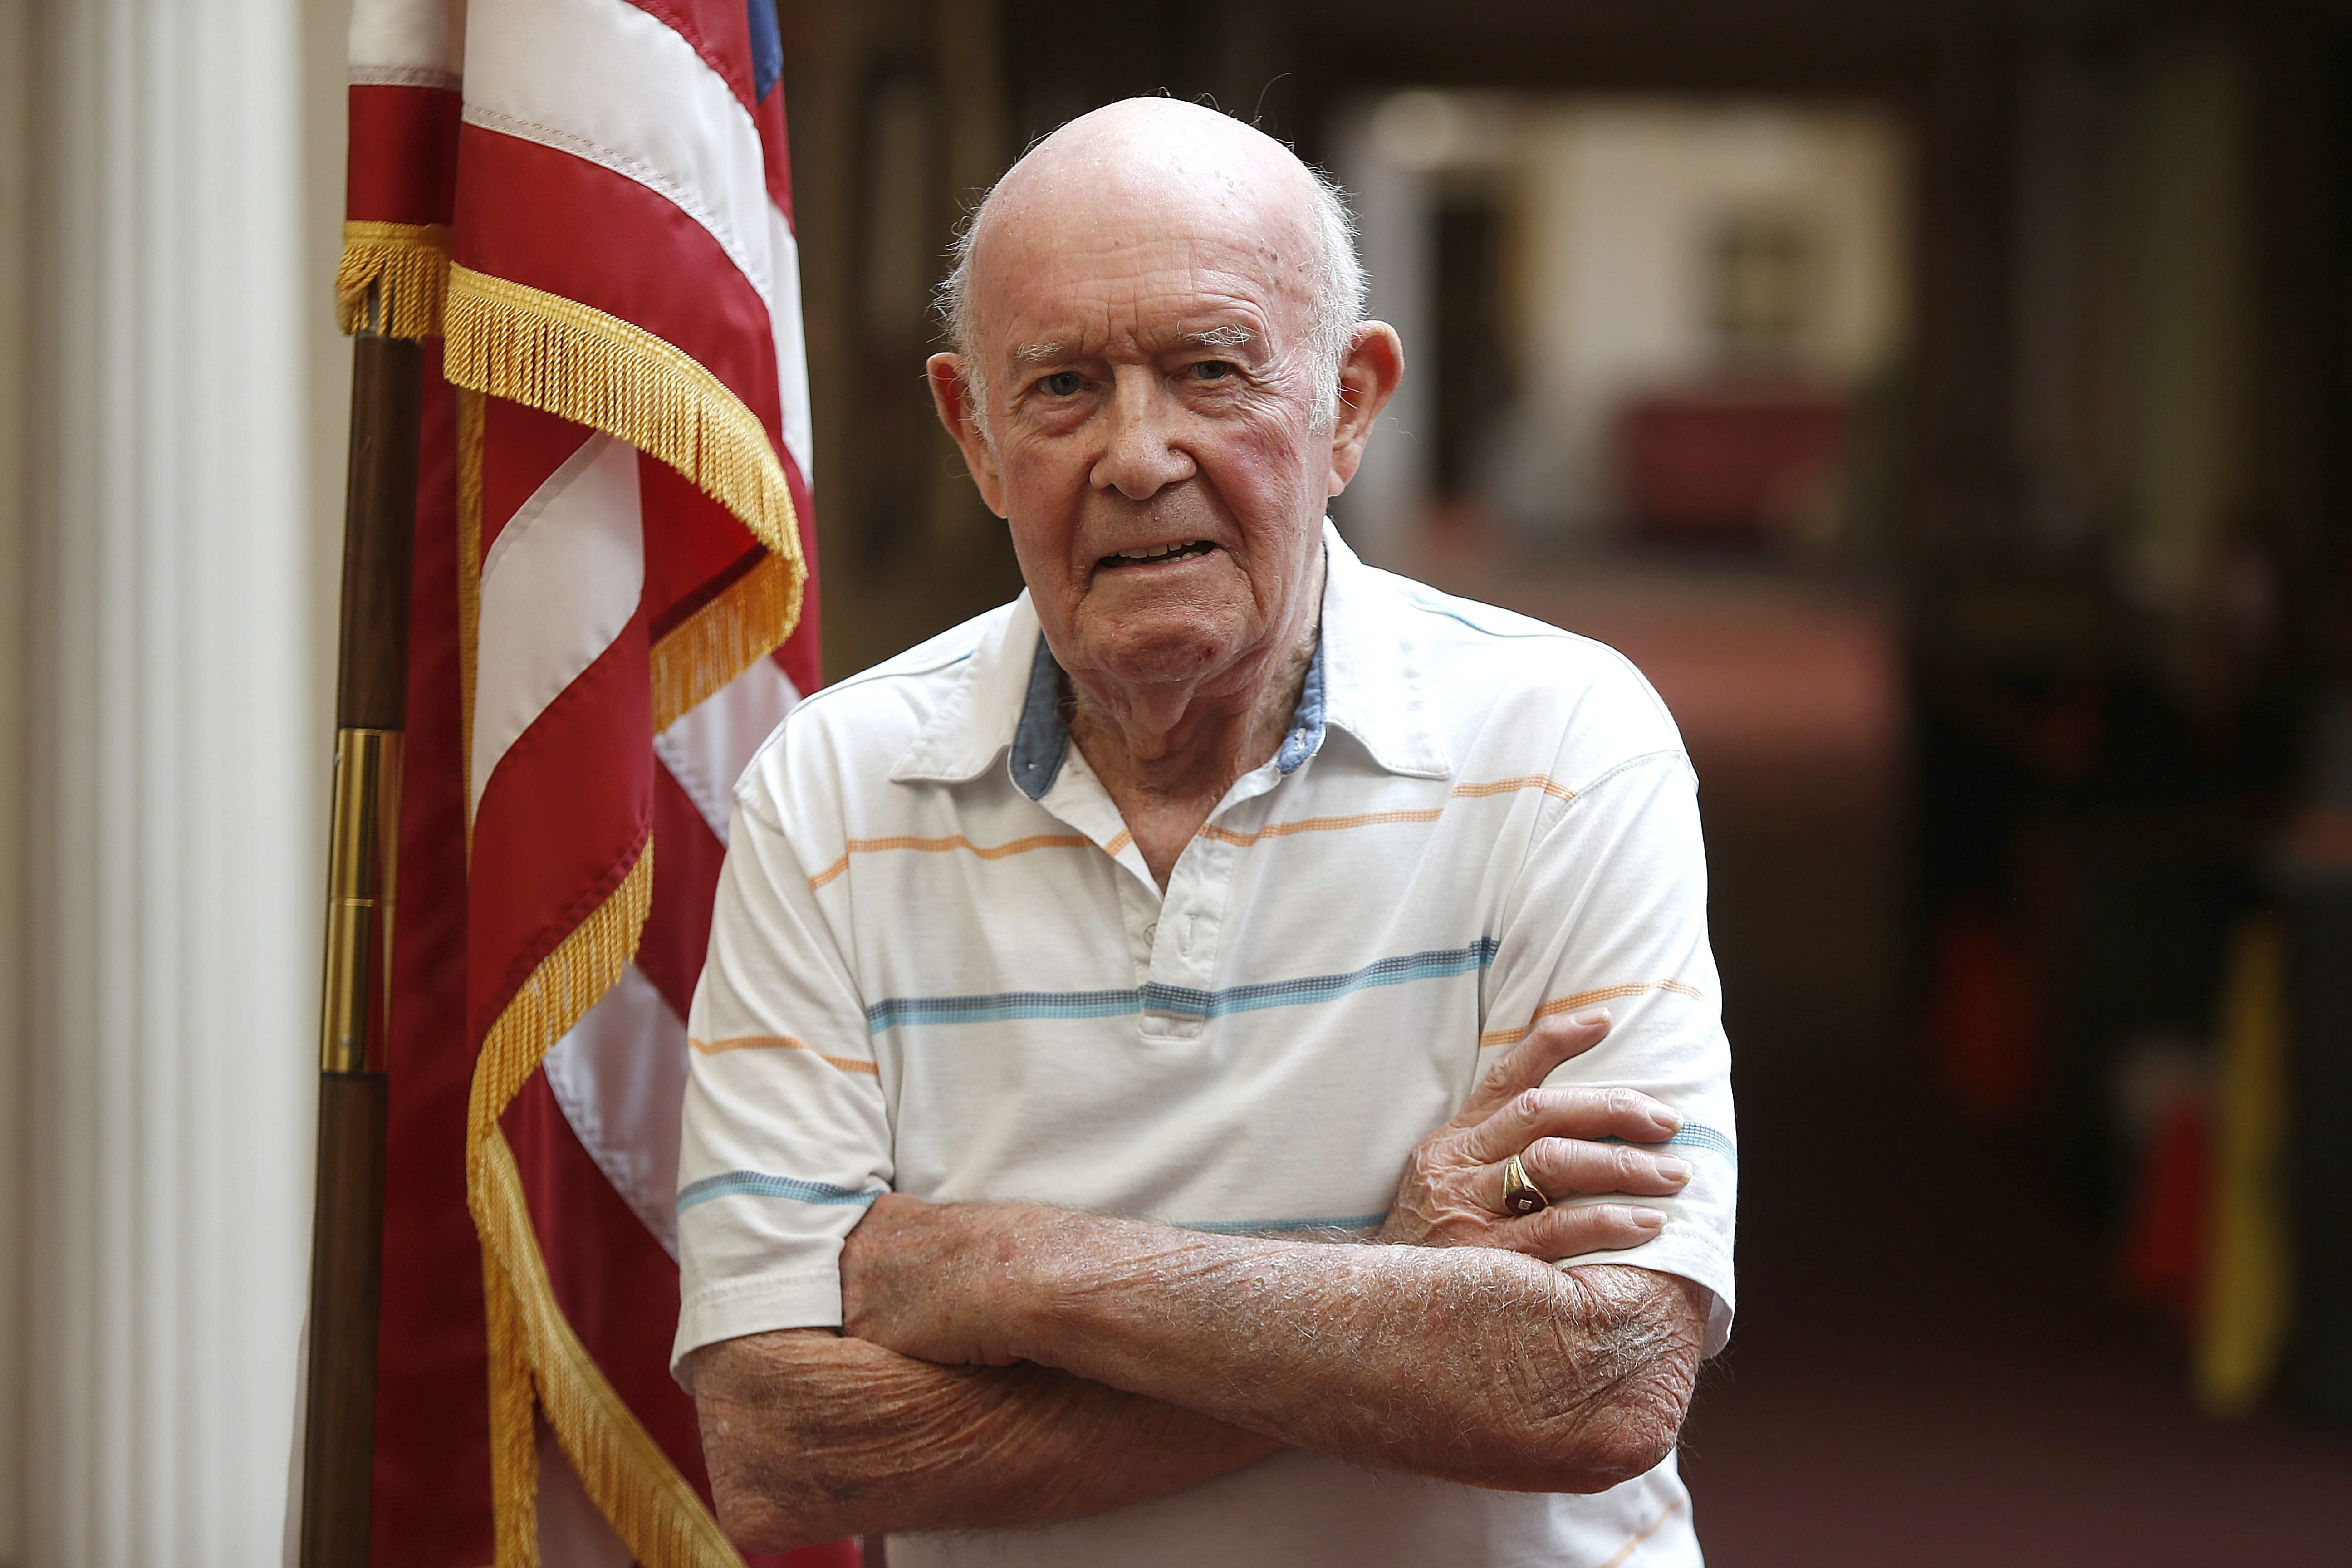 Robert F. Batt served with the 368th Engineers in Europe during WWII, including some time in coal mines.